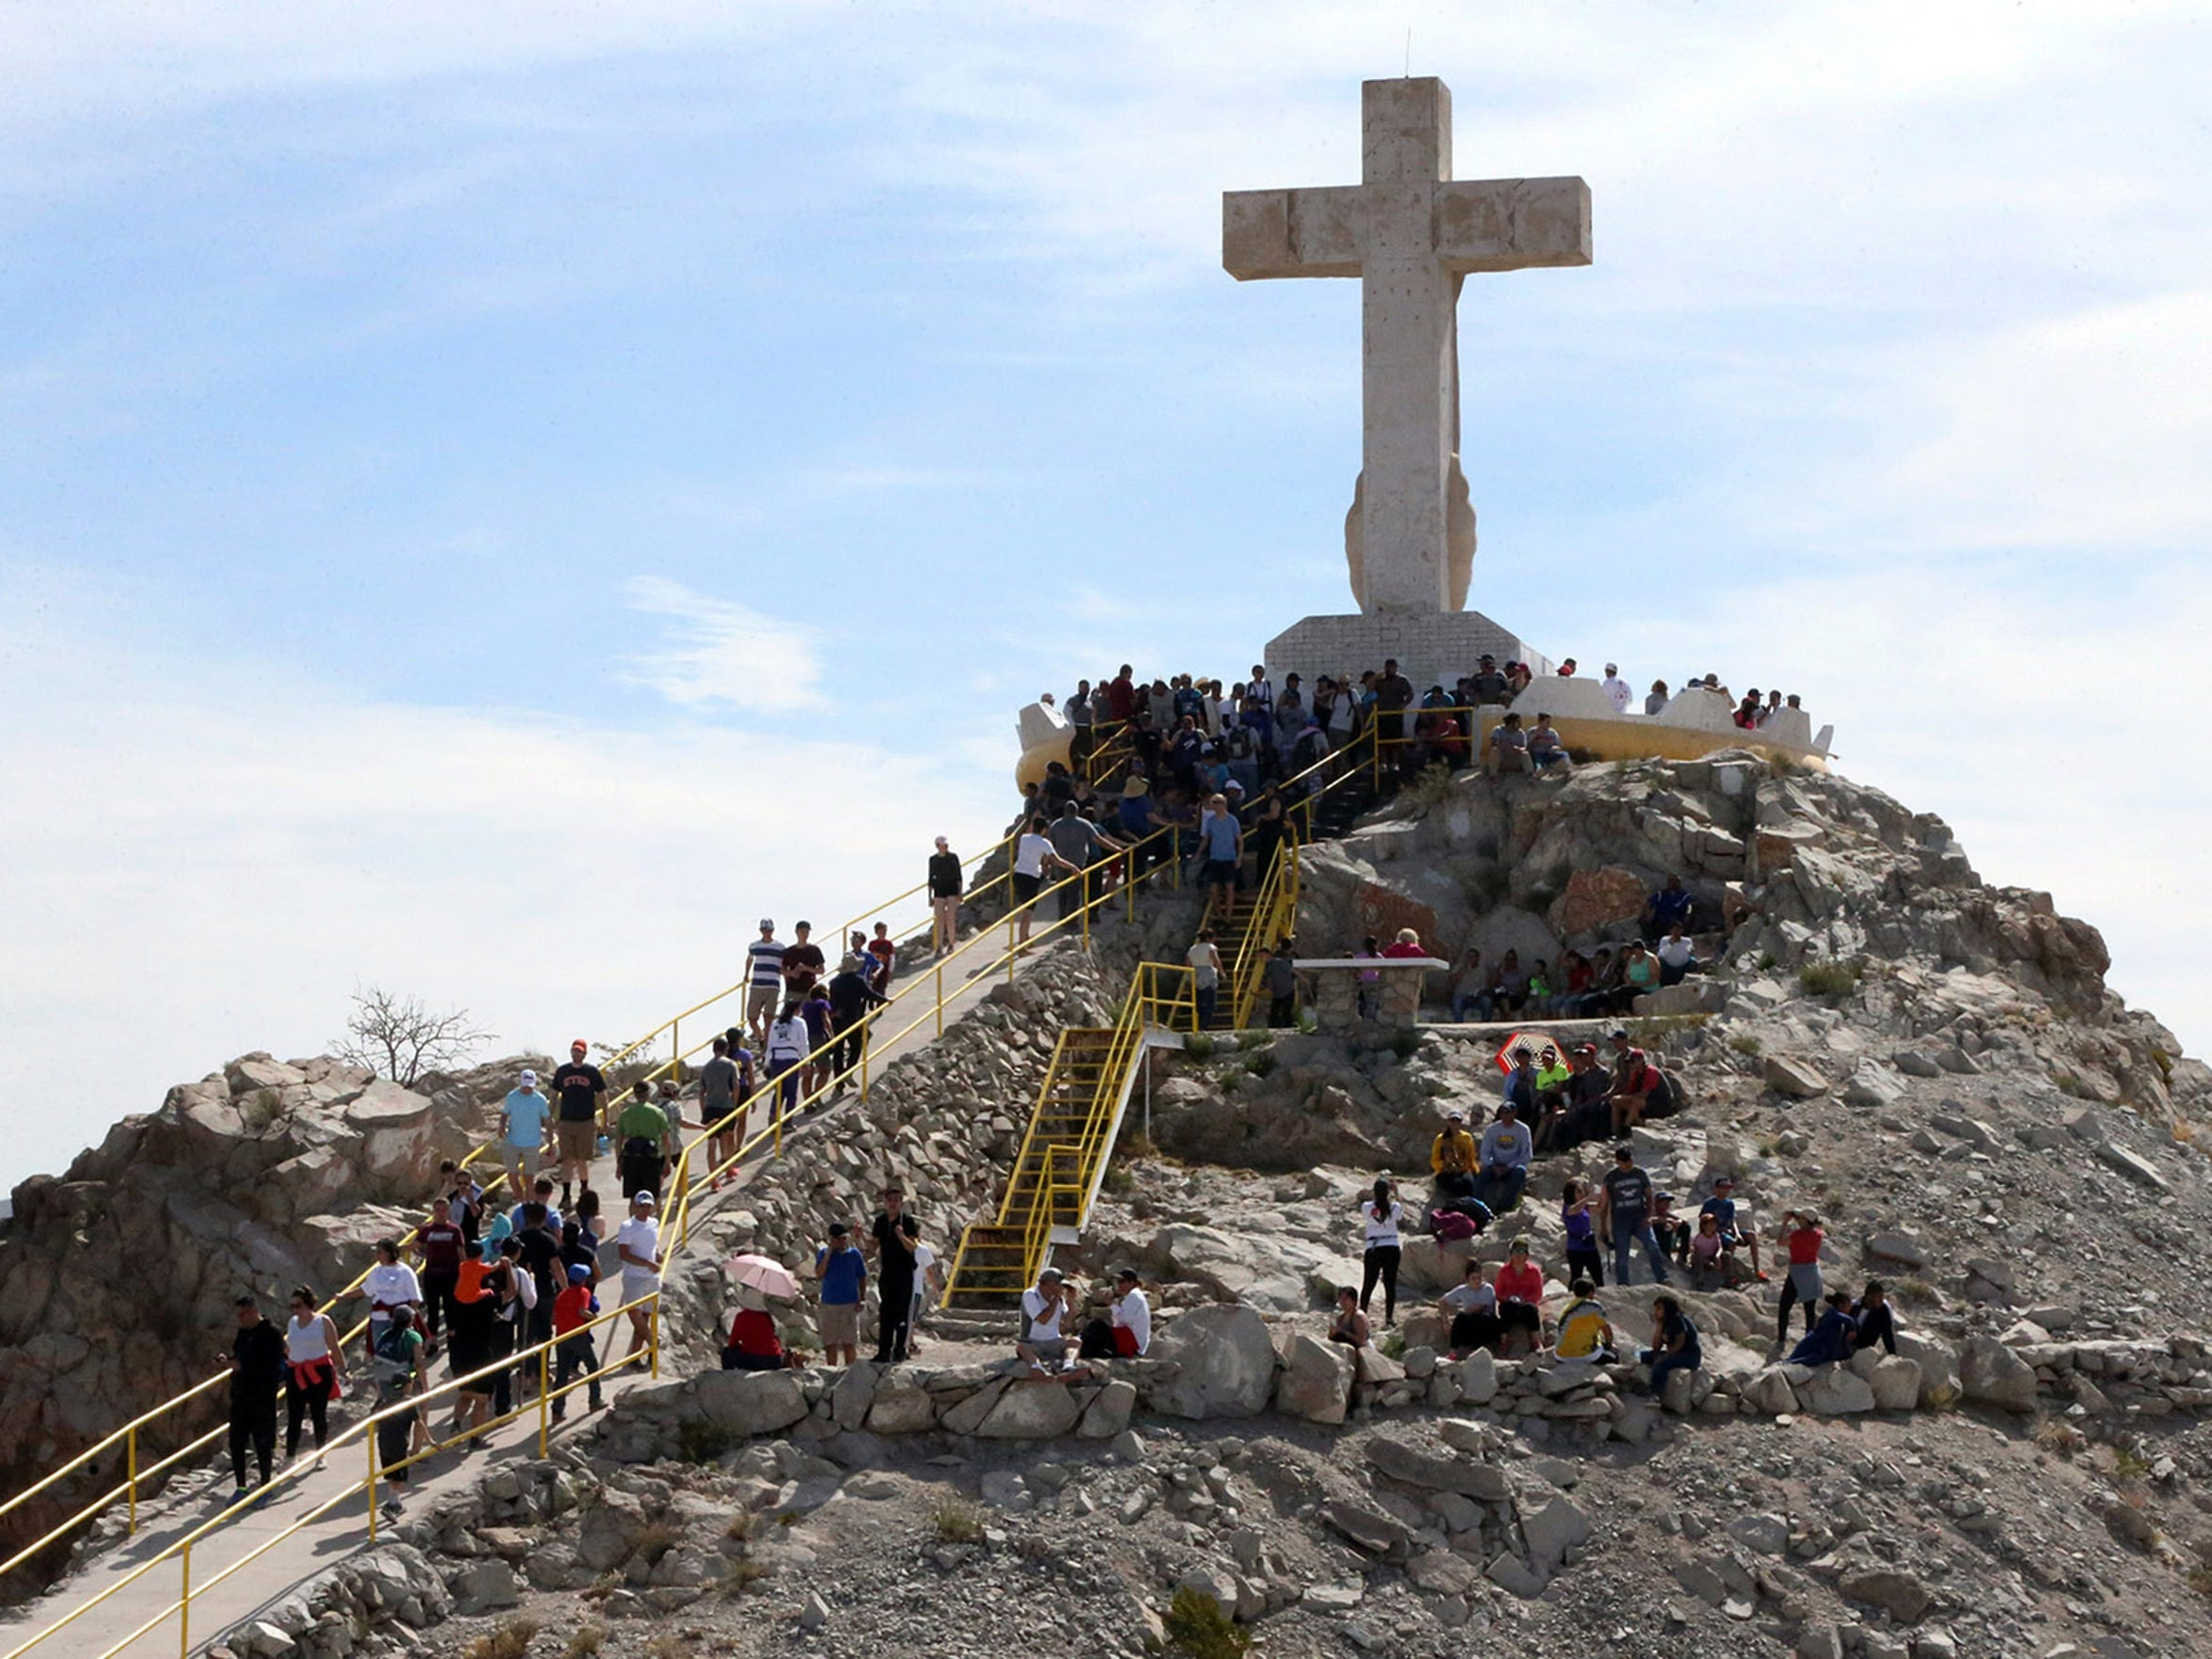 Pilgrims reach the base of the limestone cross atop